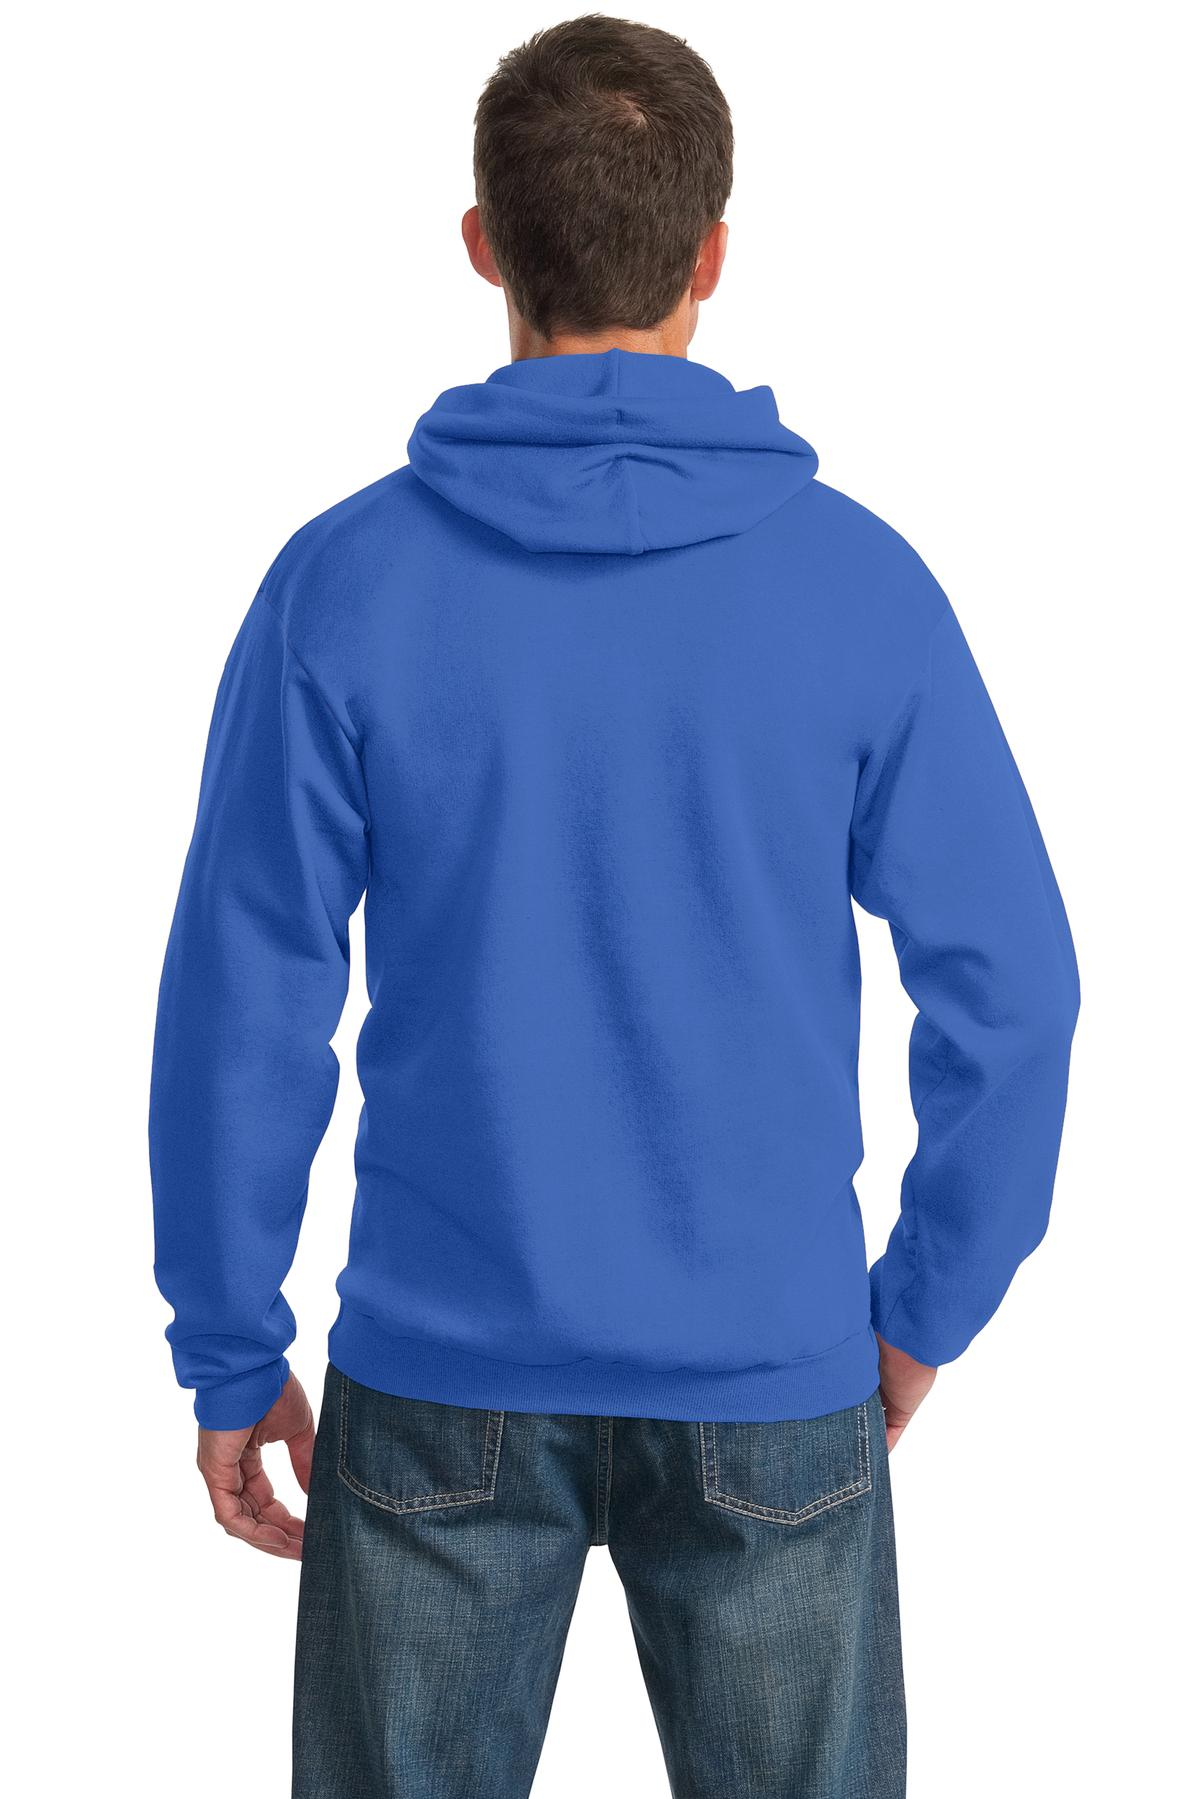 Port /& Company Ultimate Pullover Hooded Sweatshirt PC90H Size S-4XL